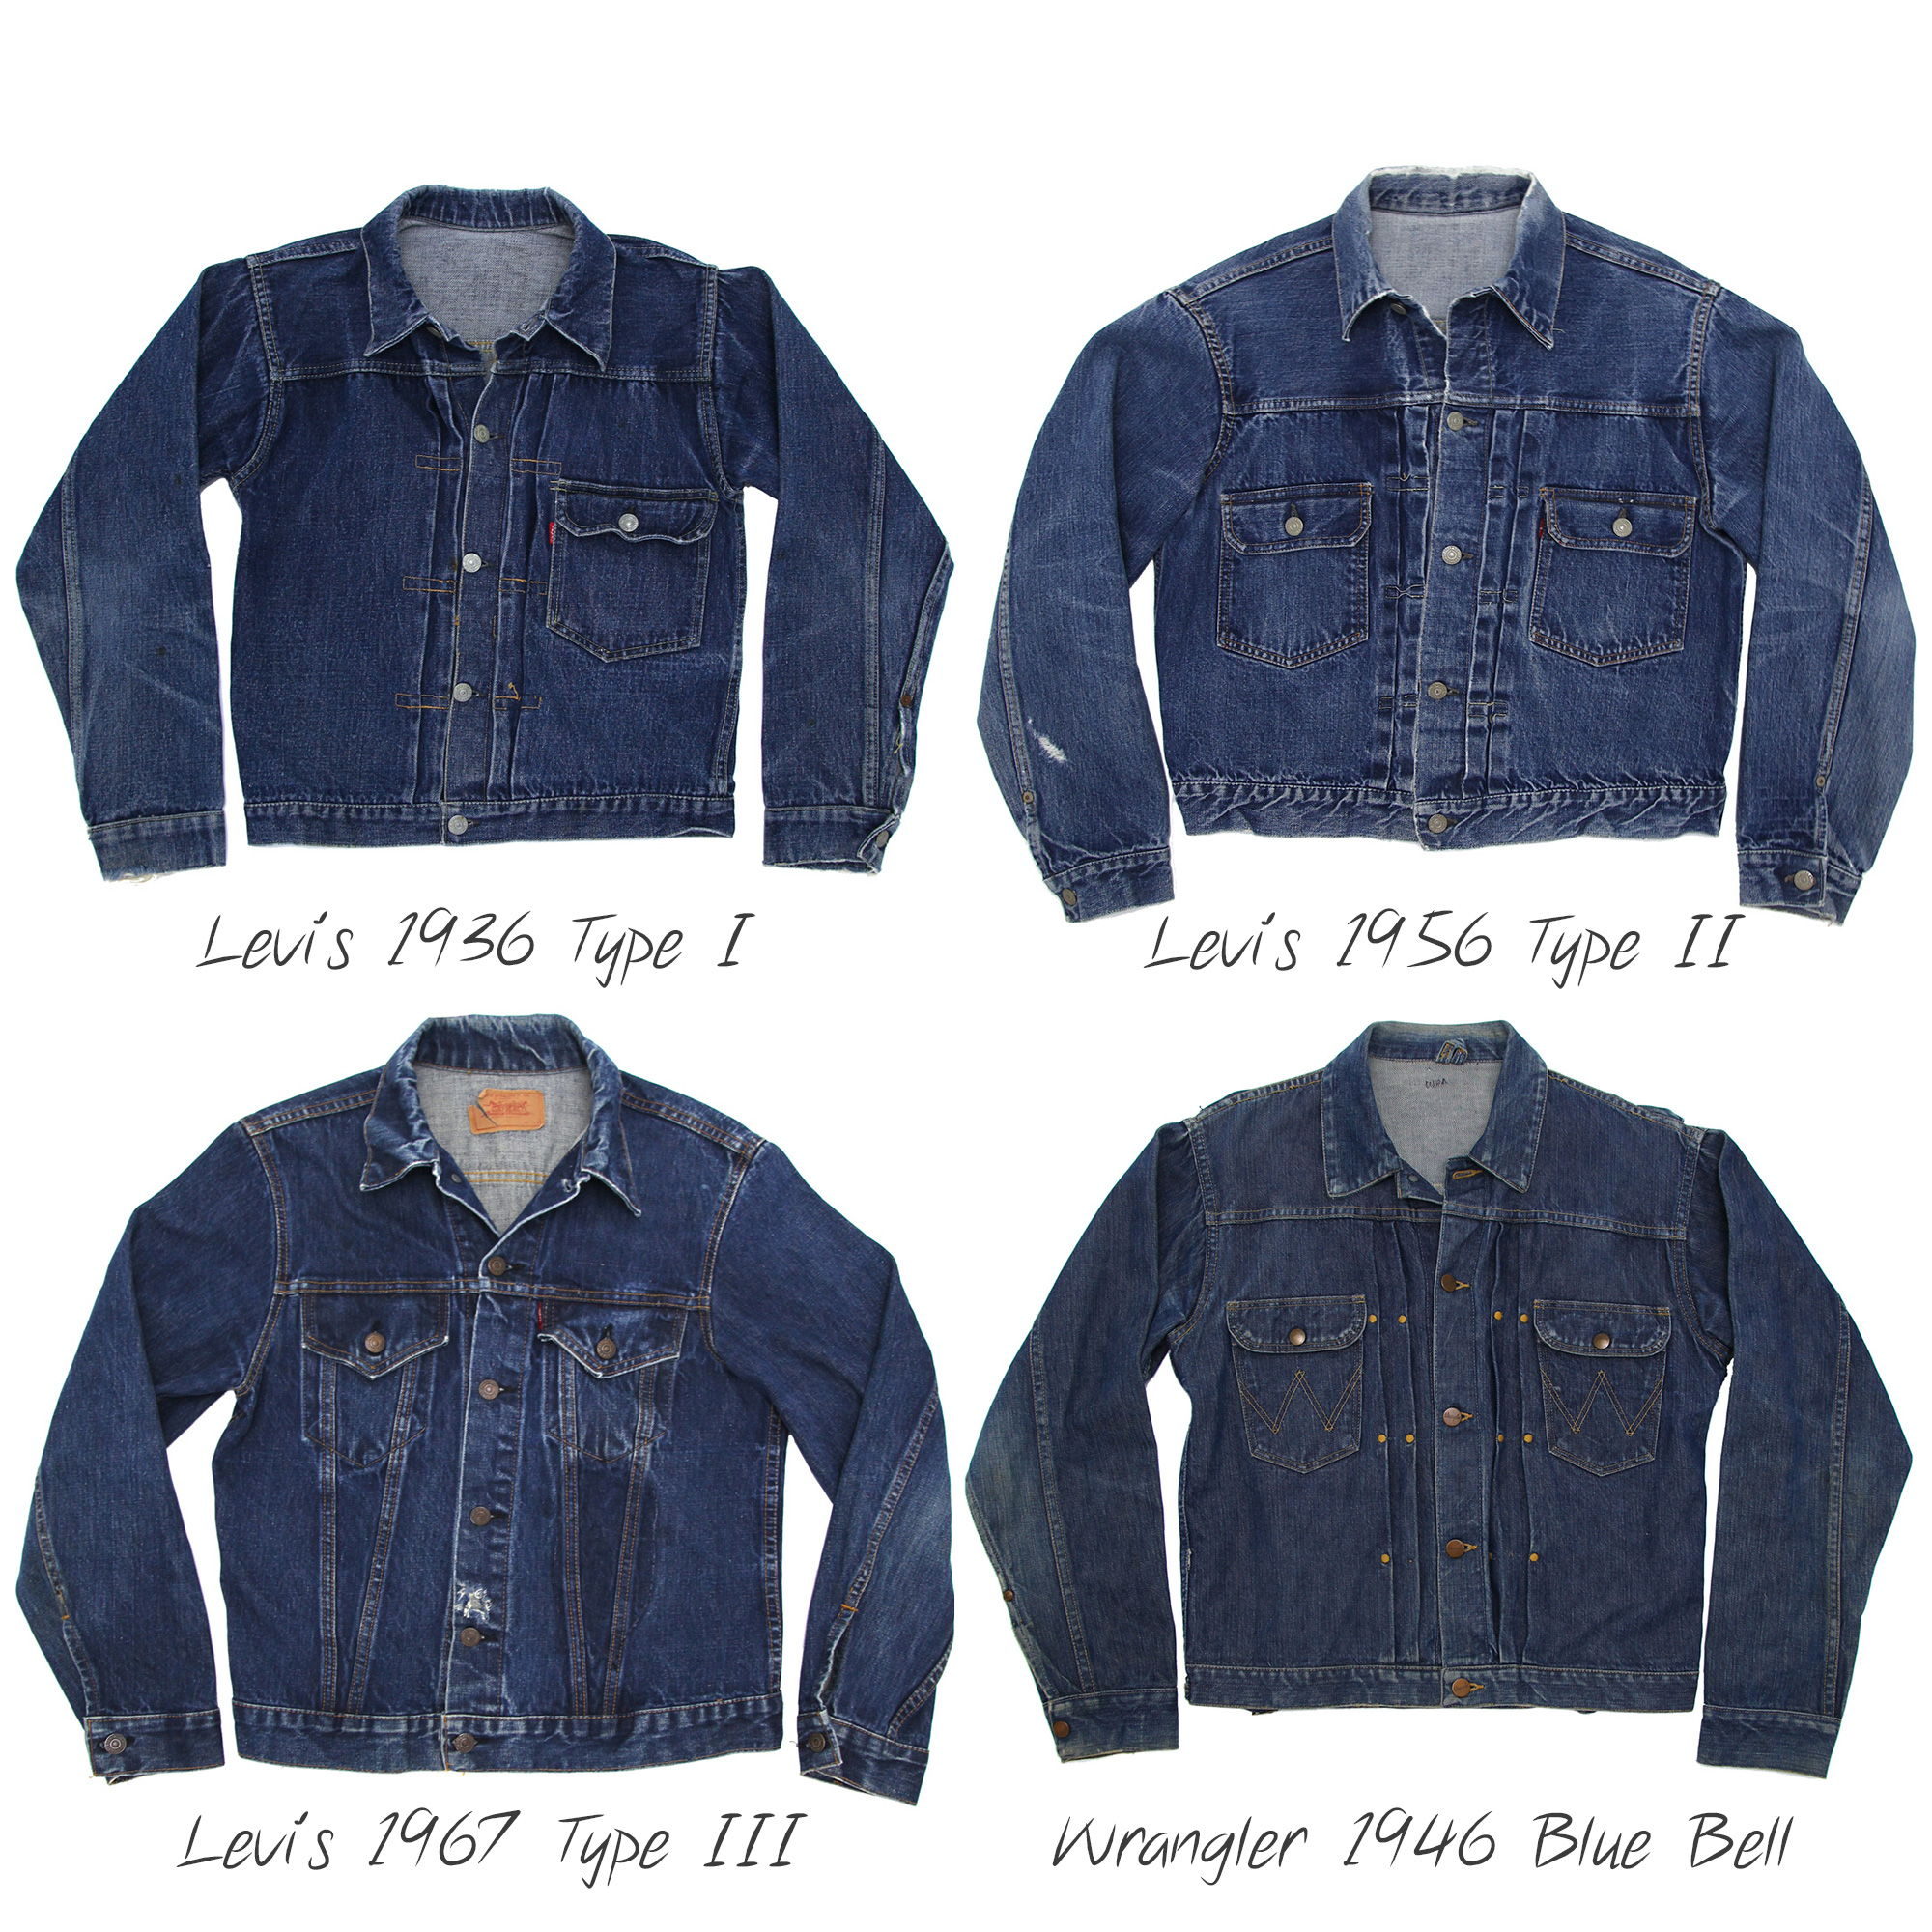 Shop The Vintage Jean Jacket Collection